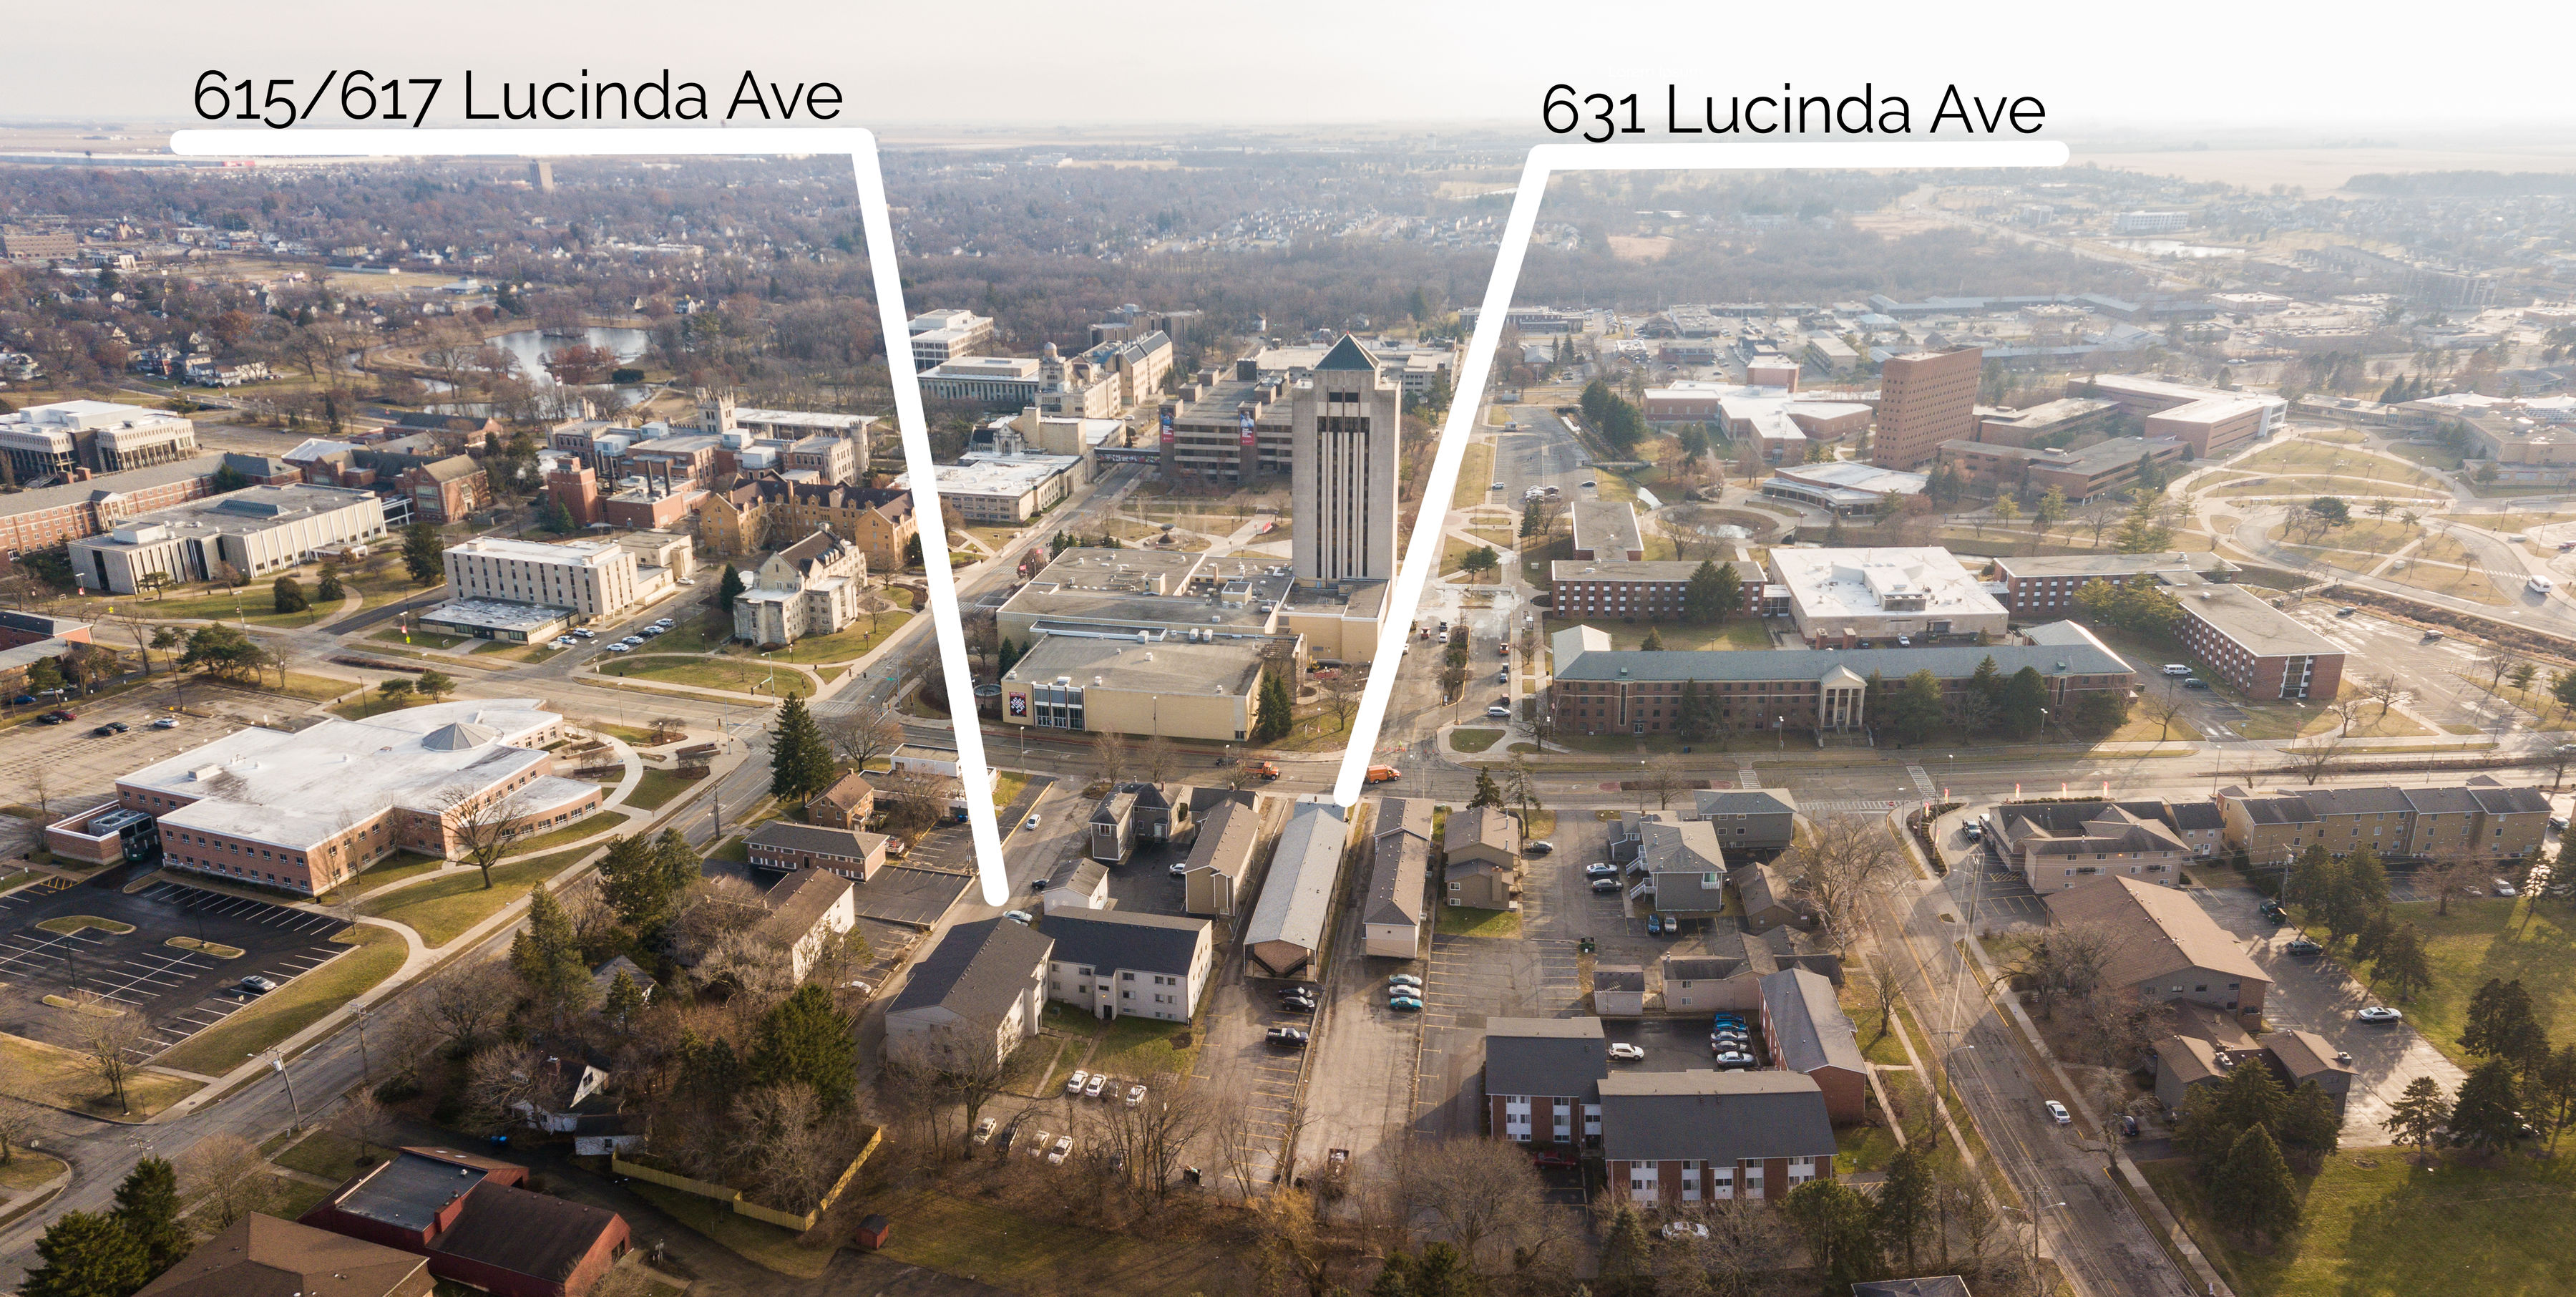 615 & 617 Lucinda Oaks Apartments, Lucinda Ave, DeKalb, IL 60115 (On Campus Housing)